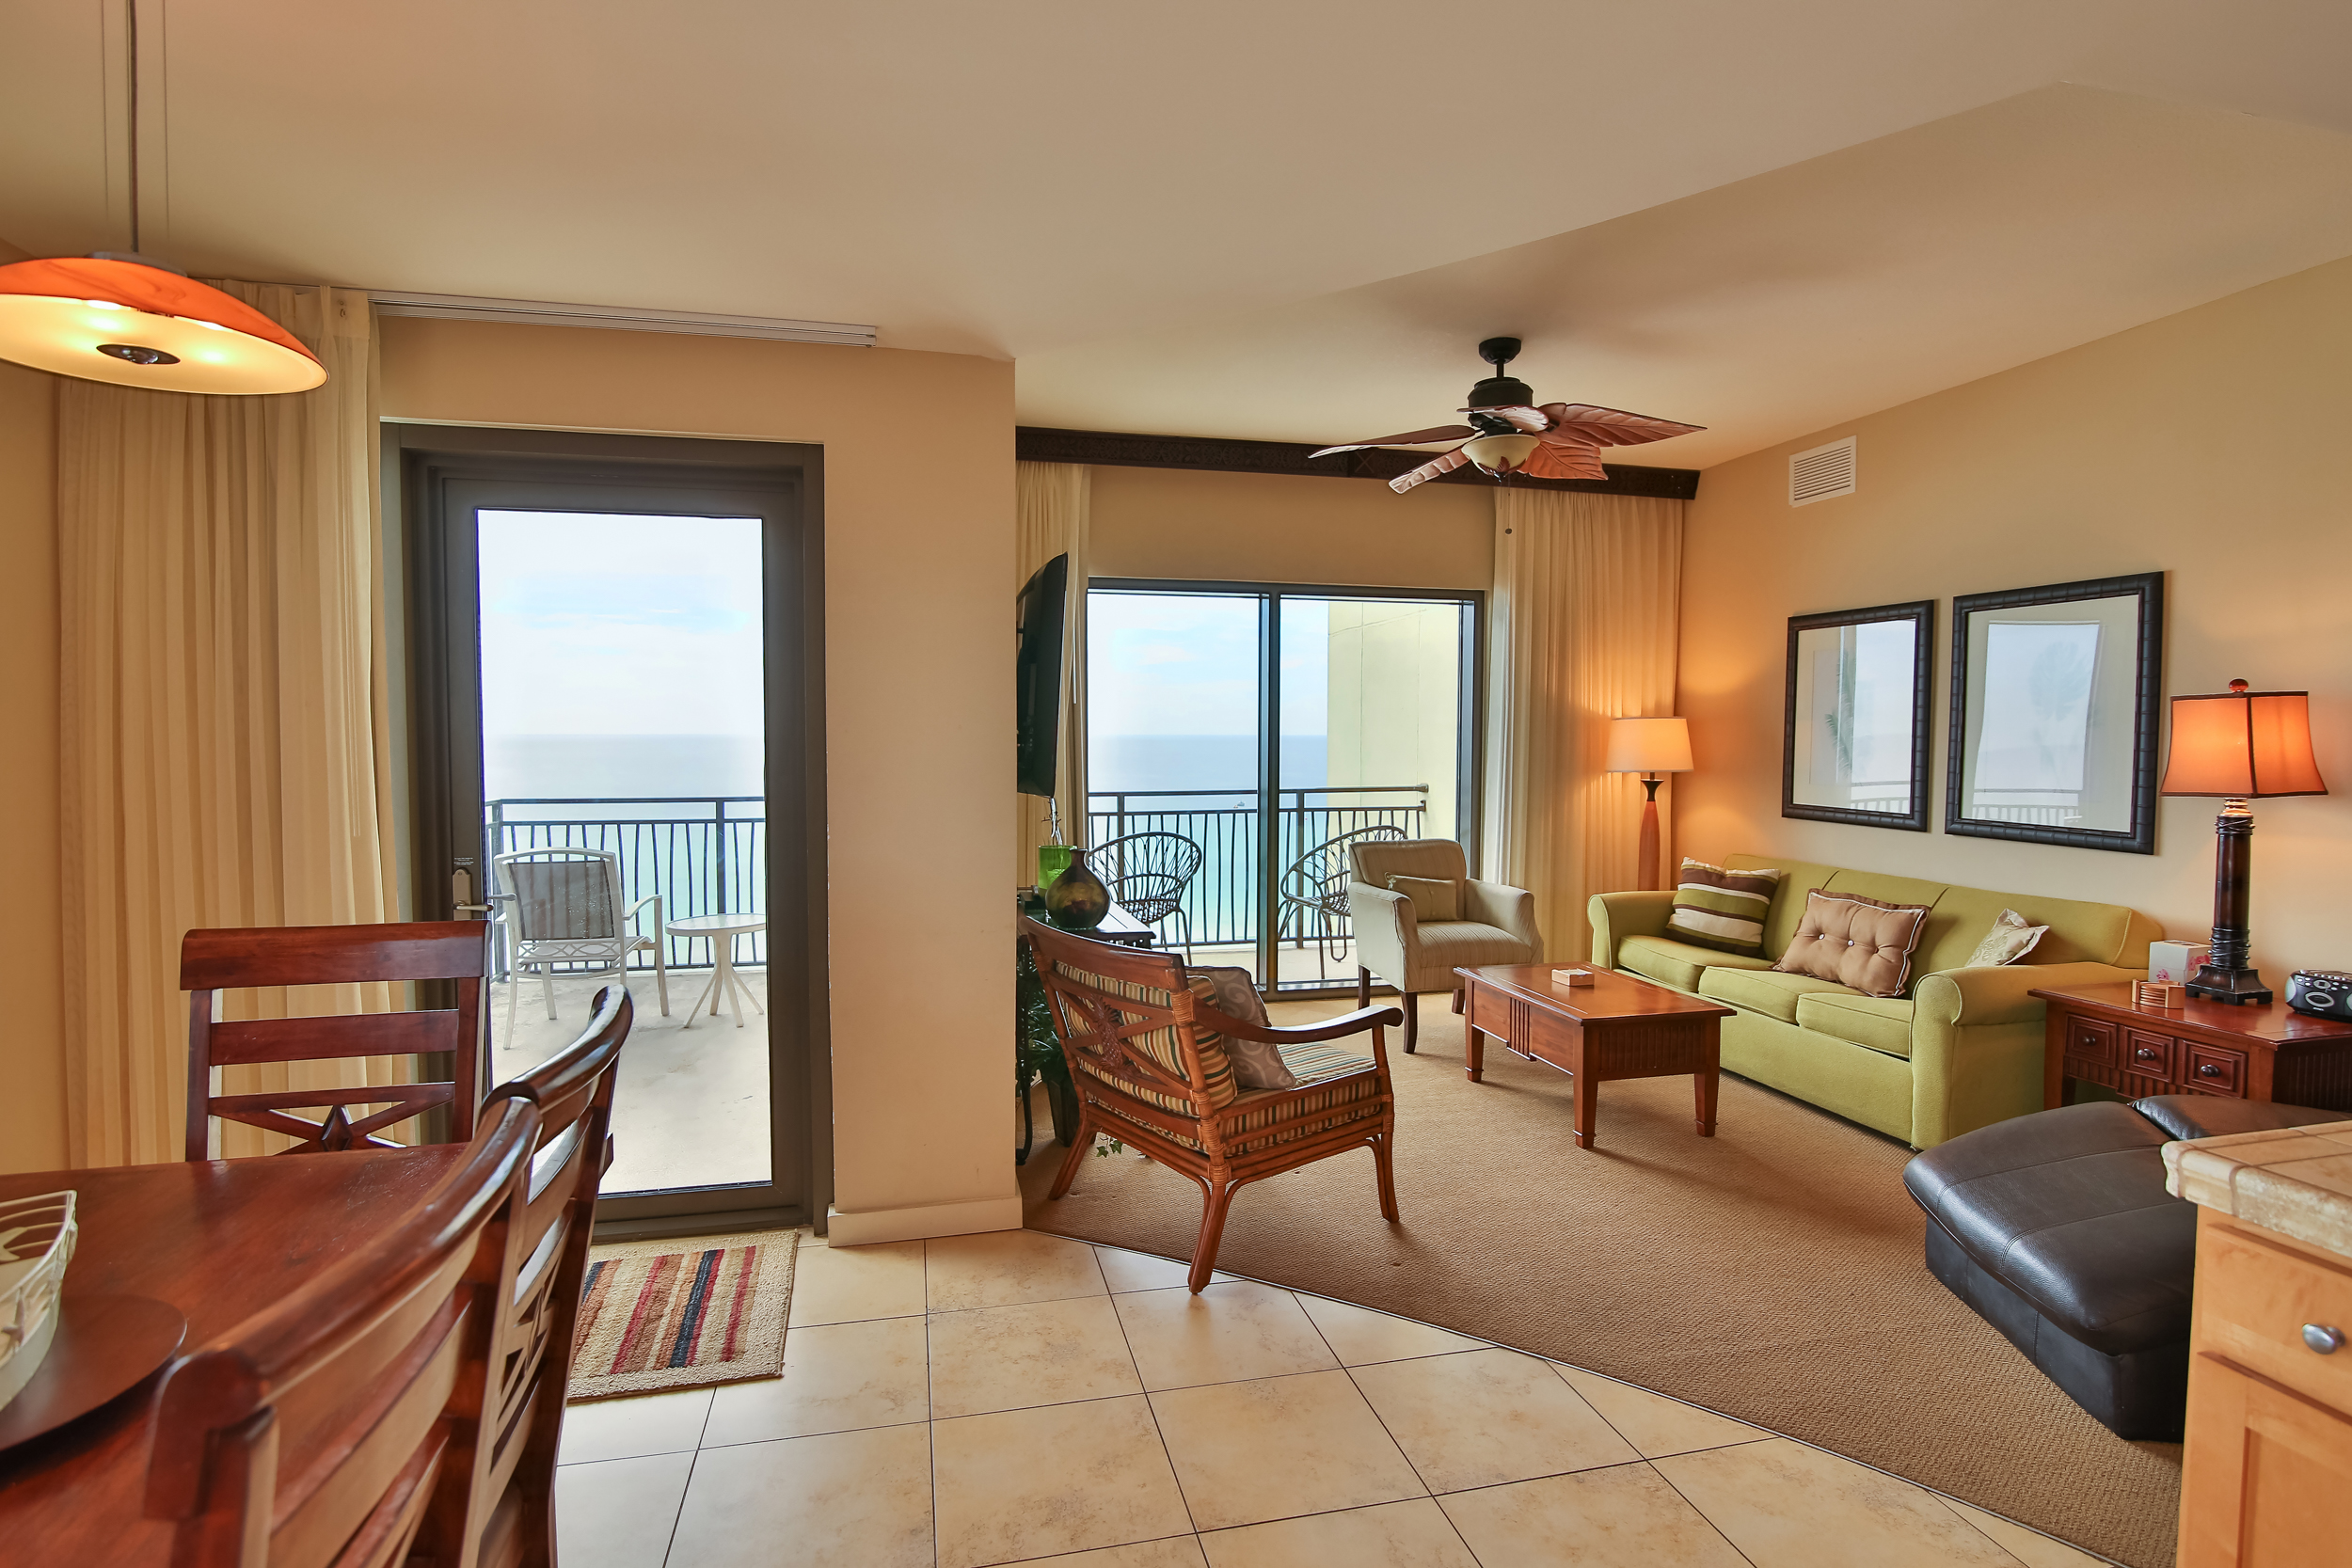 Rare 3 bedroom lockout unit life 39 s a beach real estate - 3 bedroom condos panama city beach fl ...